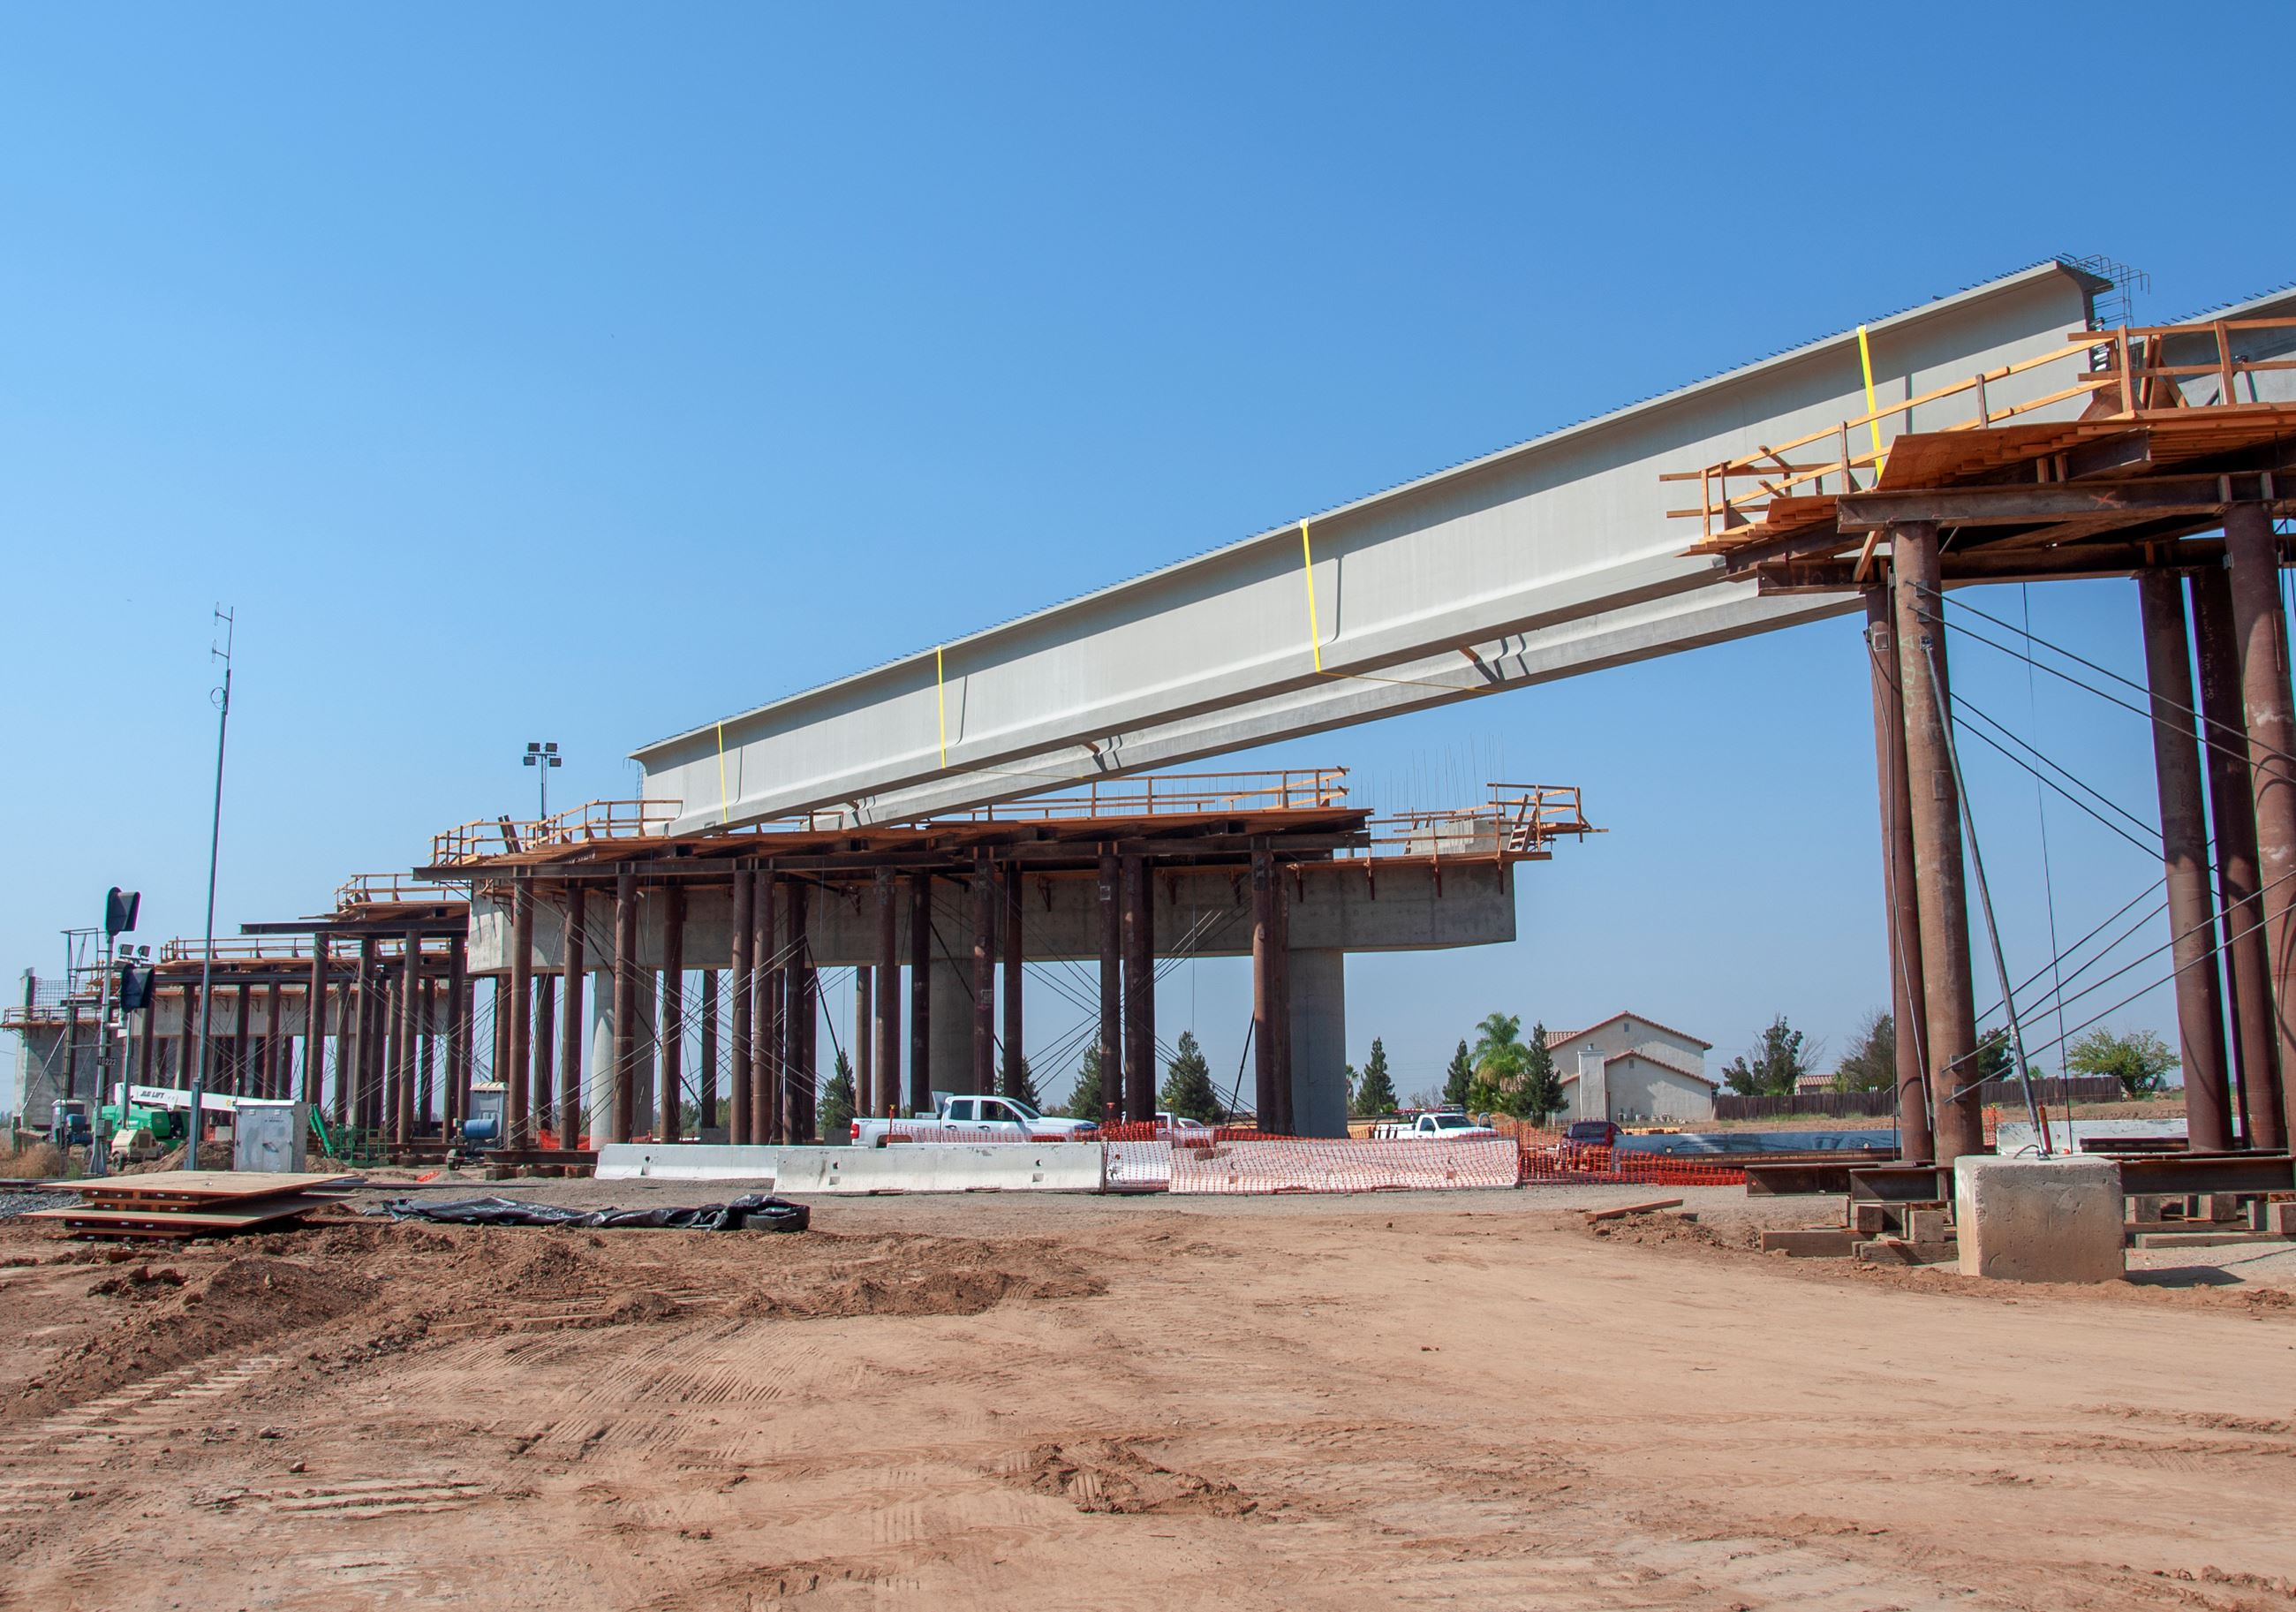 CA high speed rail Construction over Road 27 in Madera County